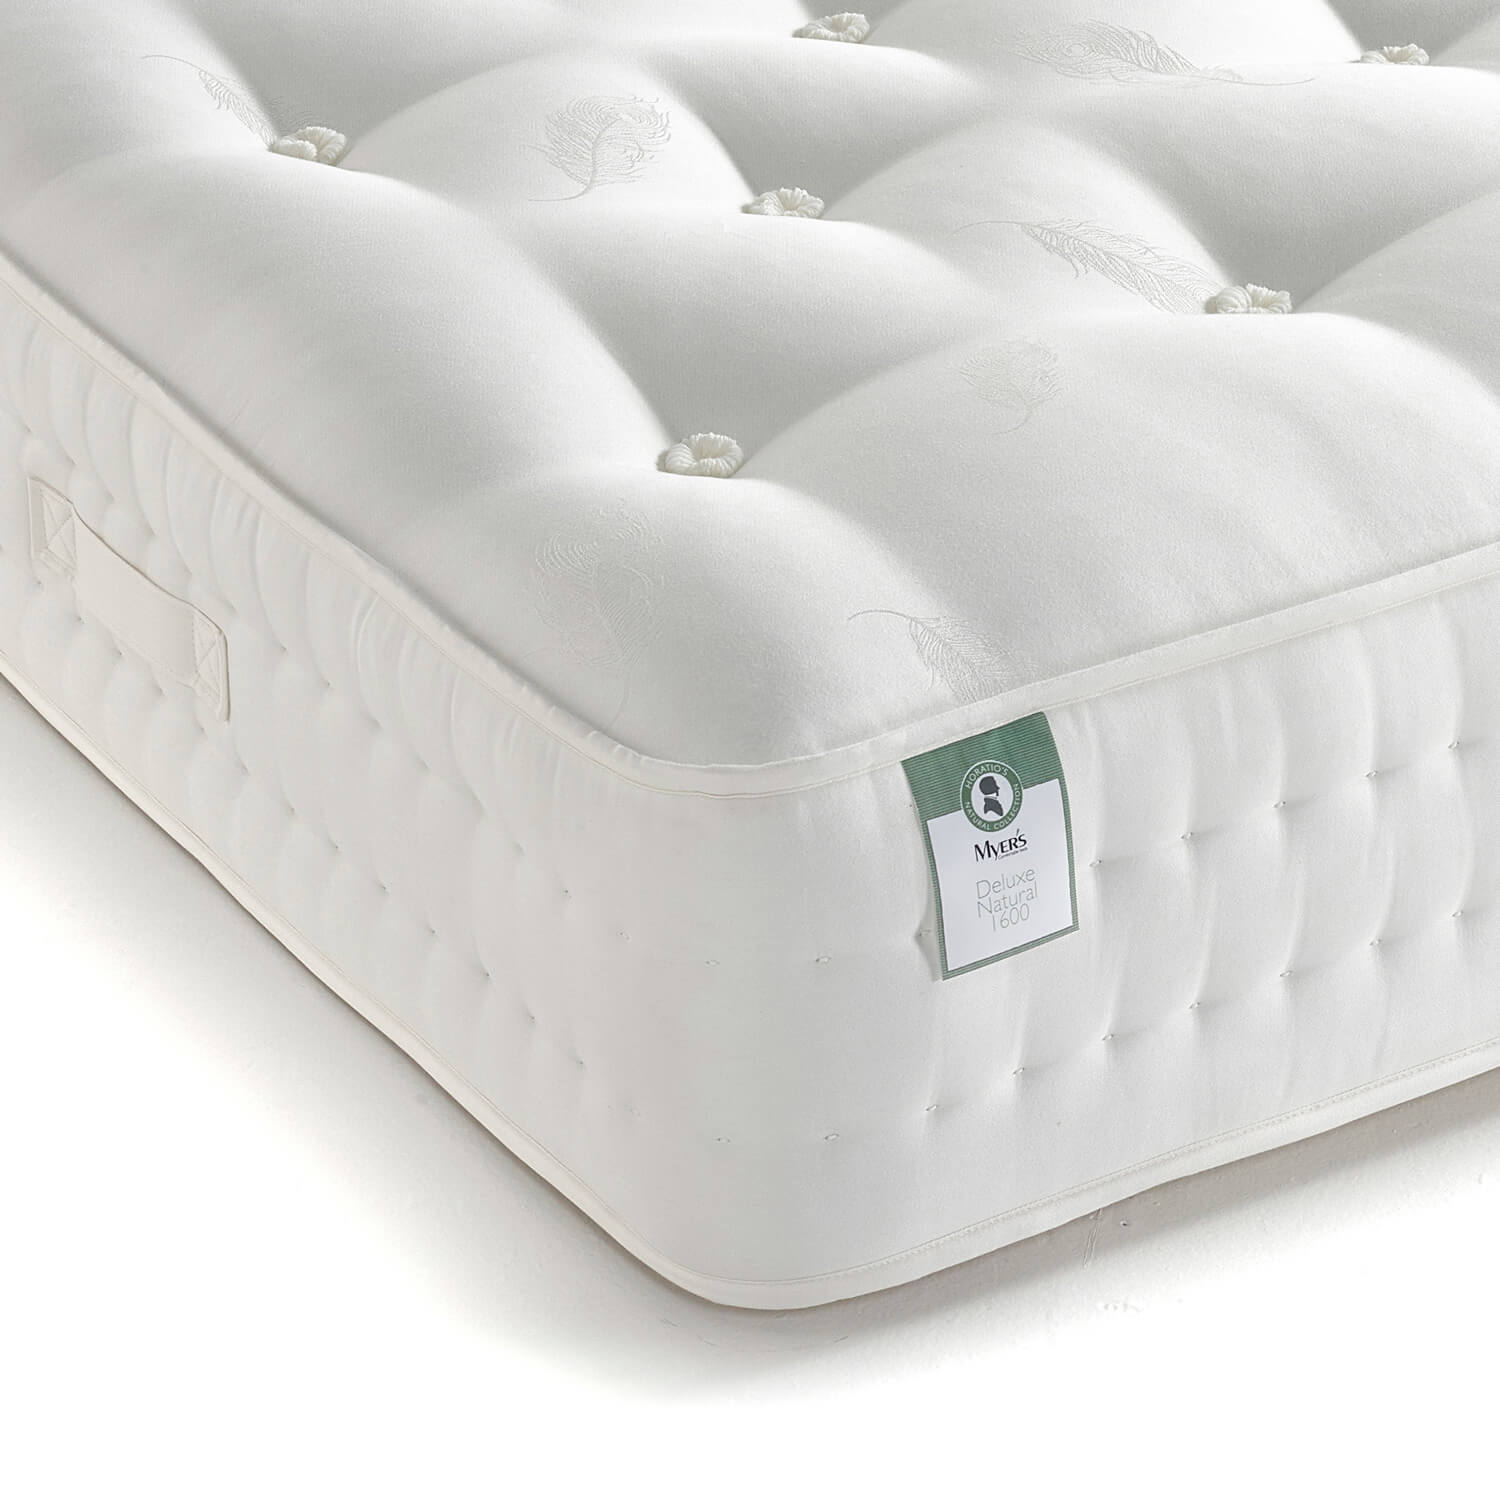 Mattresses Myers Pocket Sprung Mattress Natural Wool 1600 - with 100% natural layers (Size: Small Double)